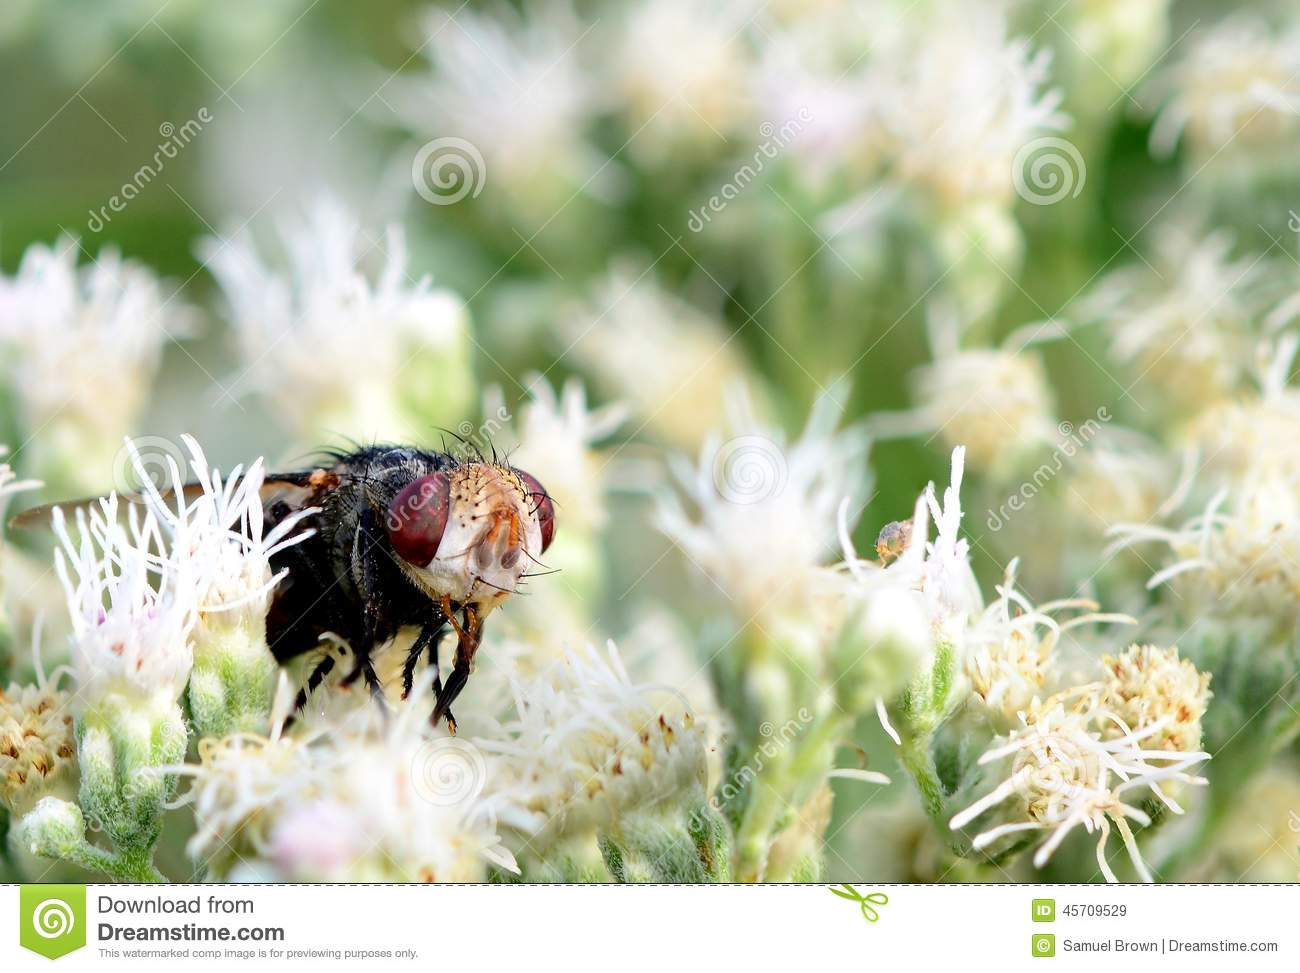 A Big Ugly Fly In Some Beautiful White Flowers Stock Image